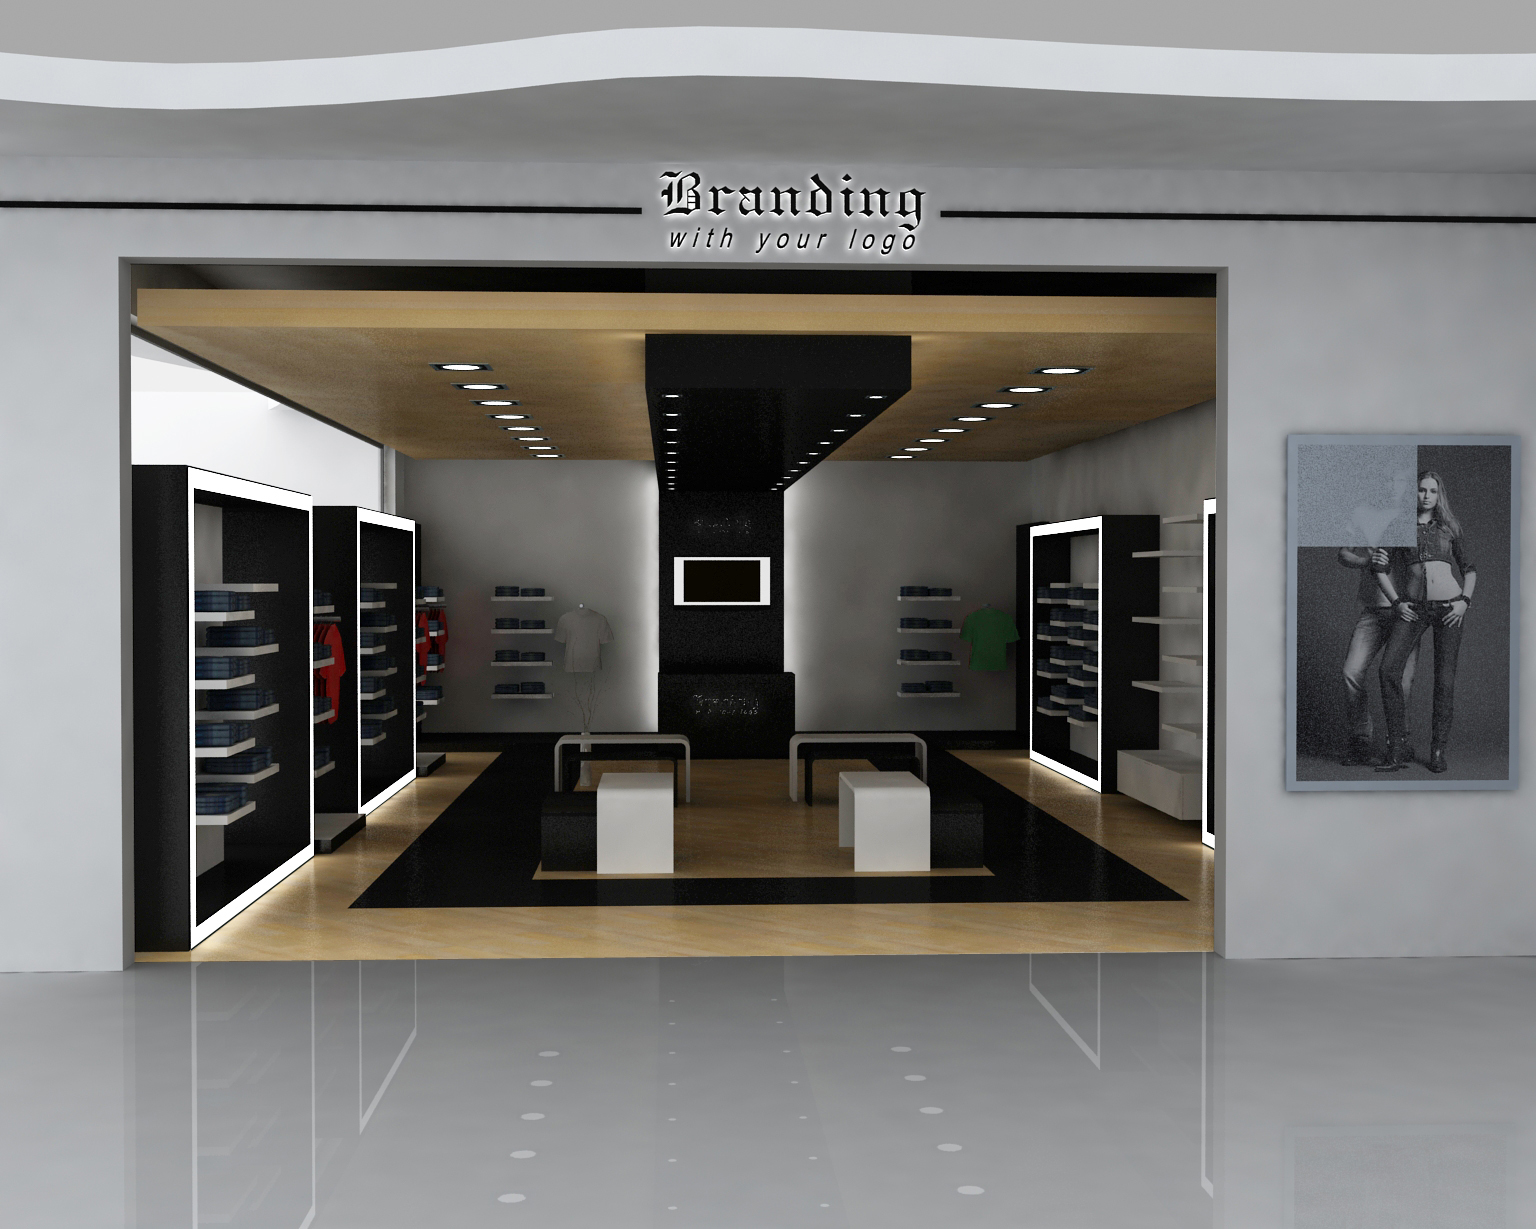 Exterior retail storefront design for Retail store interior design